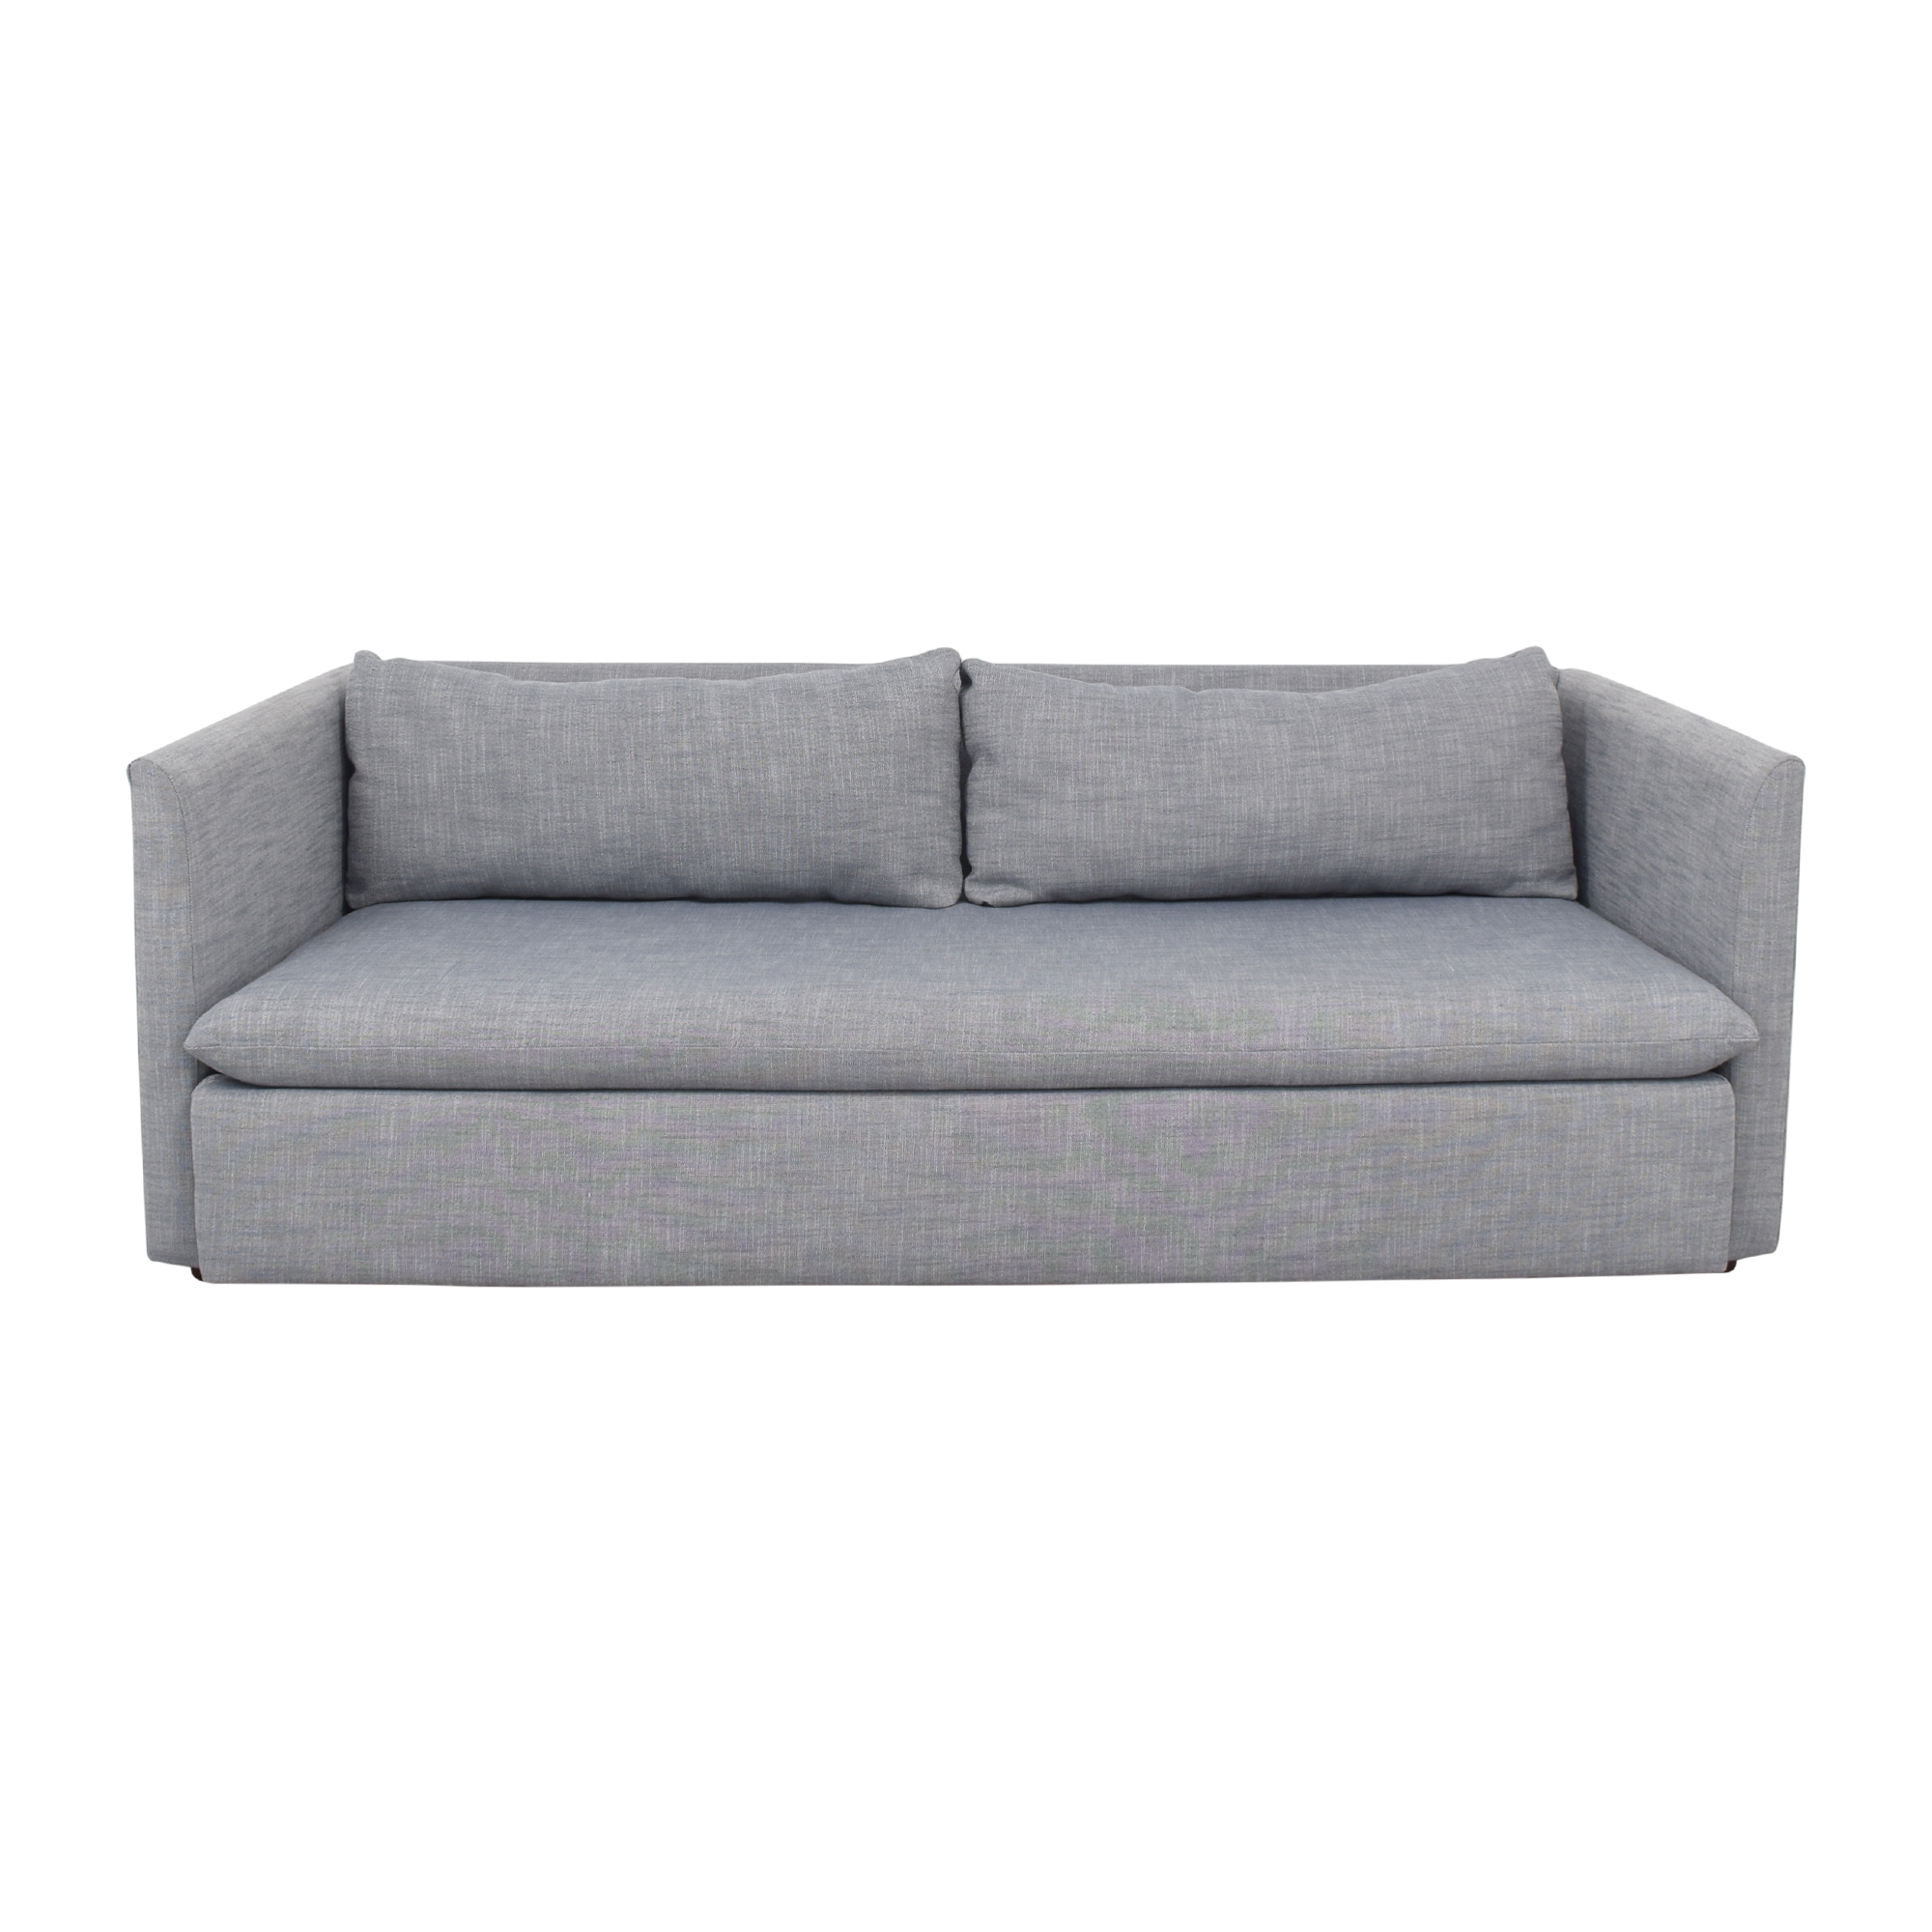 buy West Elm Shelter Sofa West Elm Classic Sofas